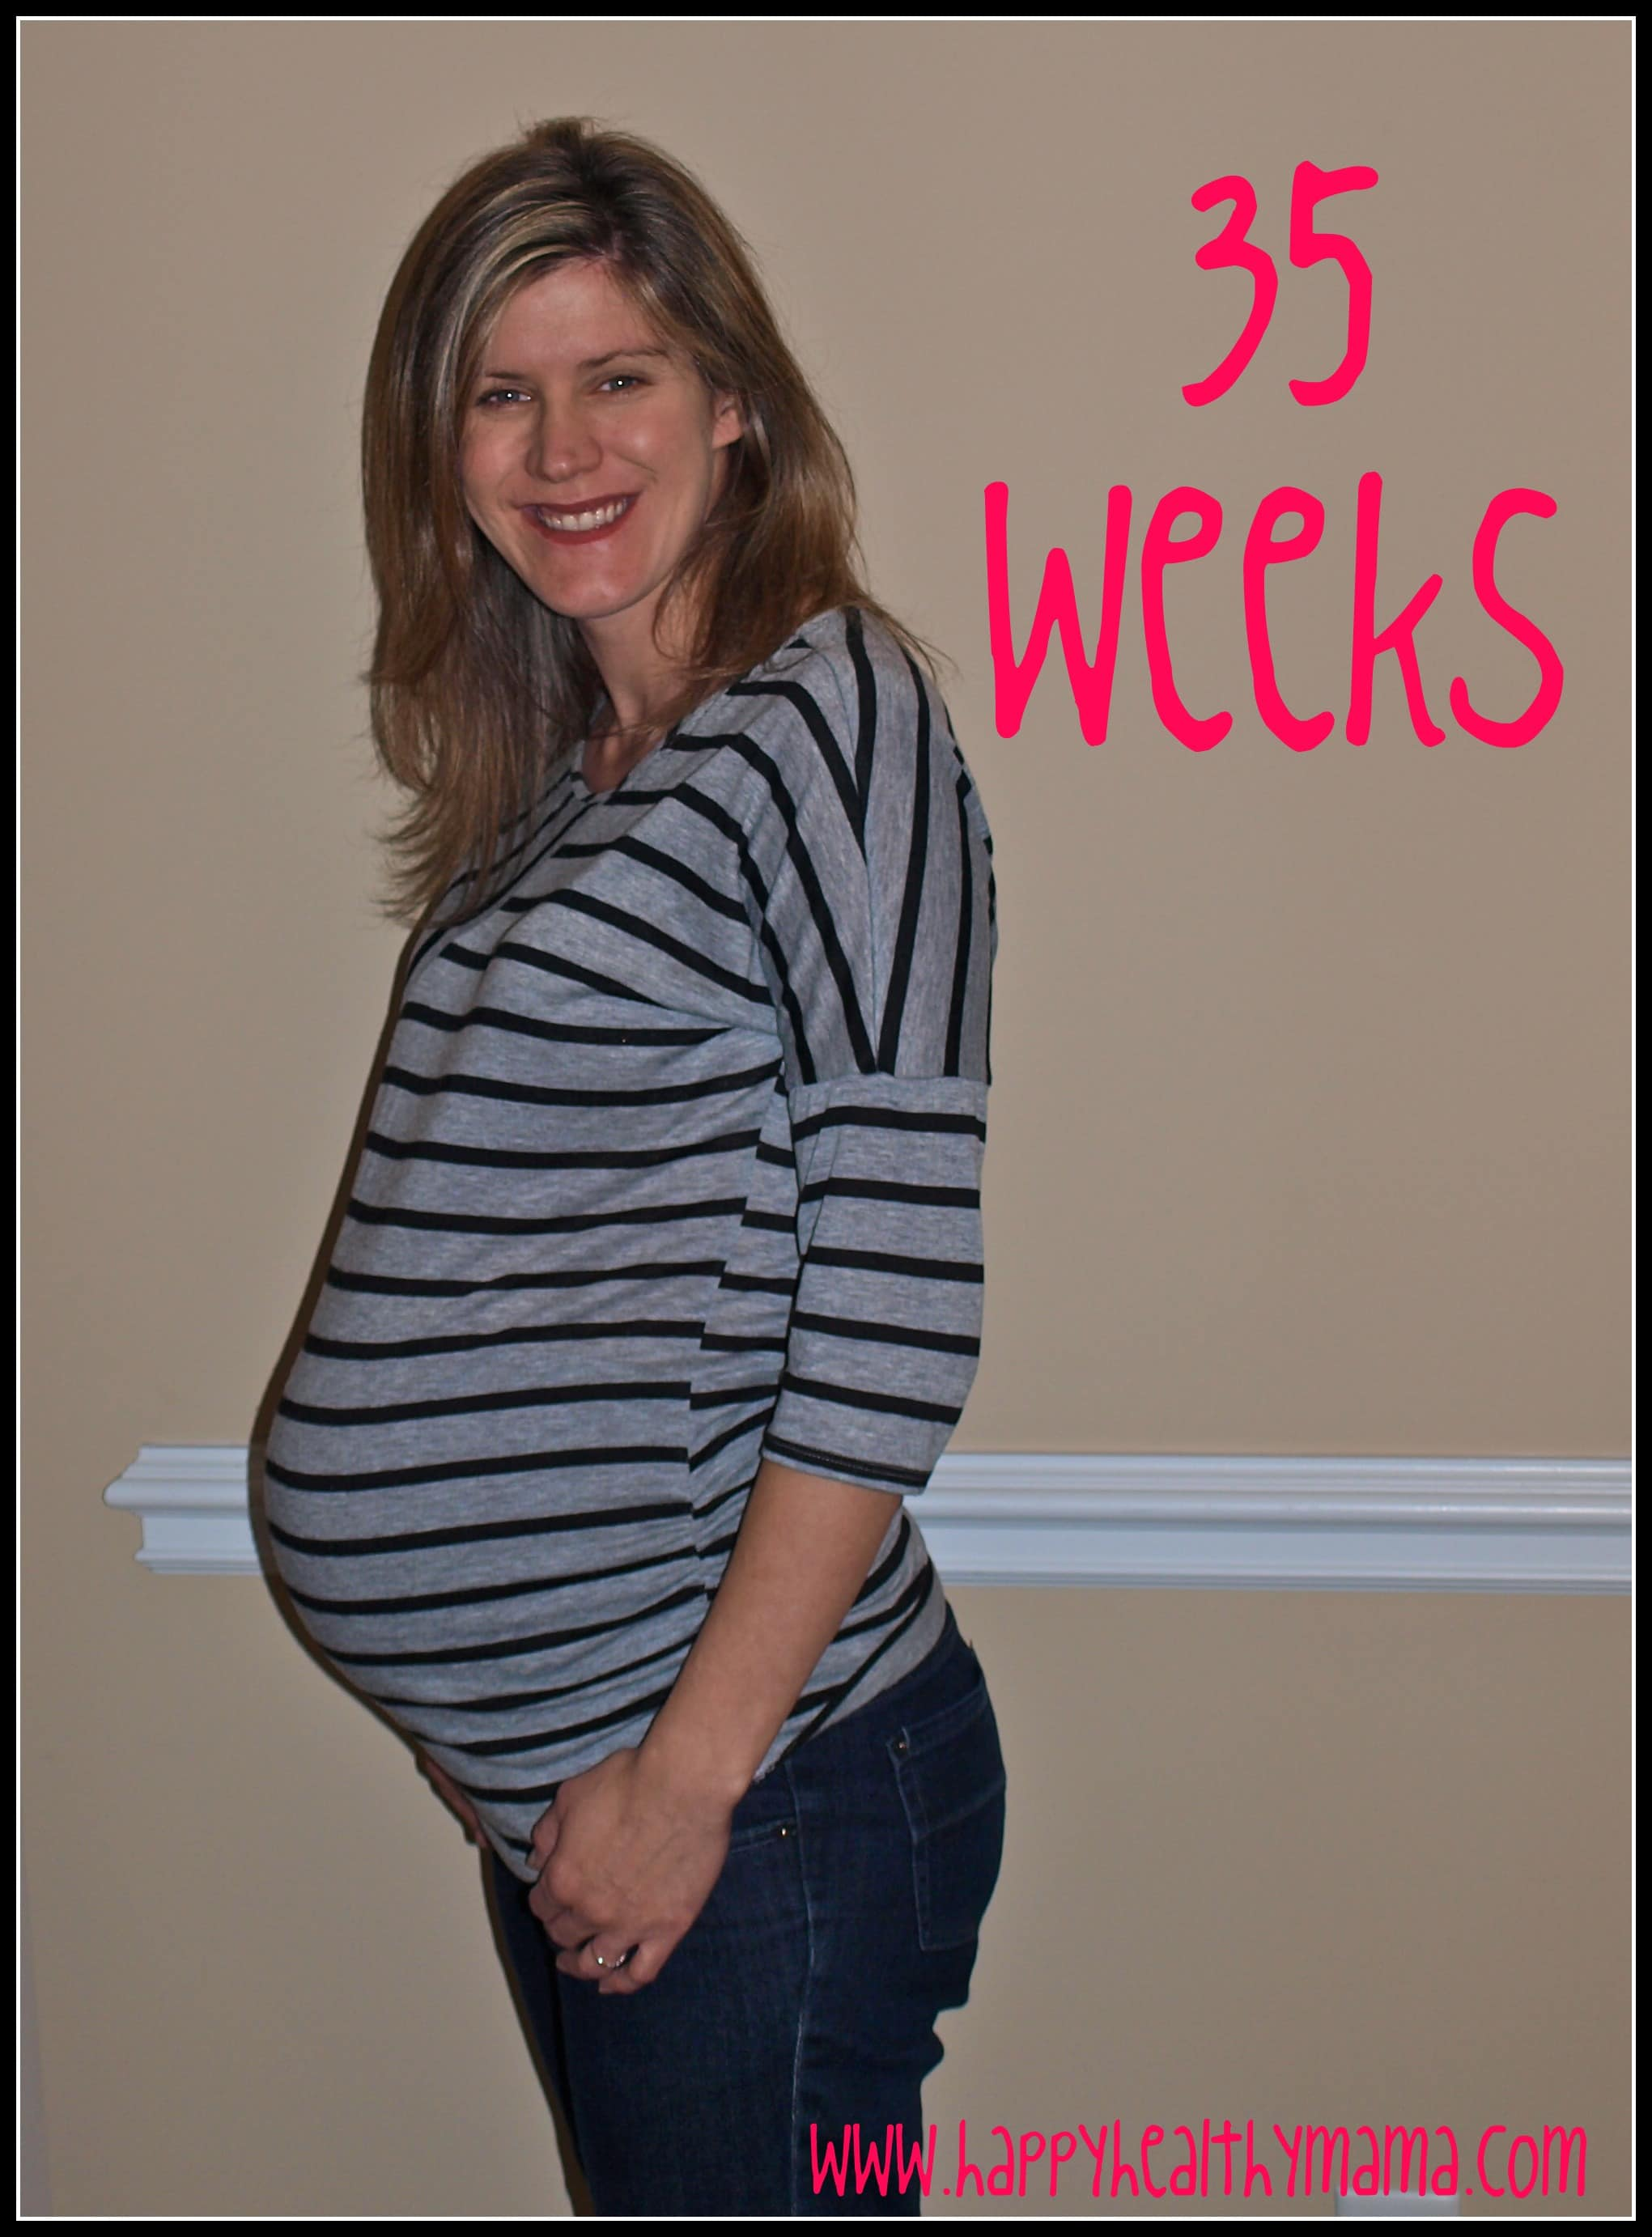 35 weeks pregnant and cramping